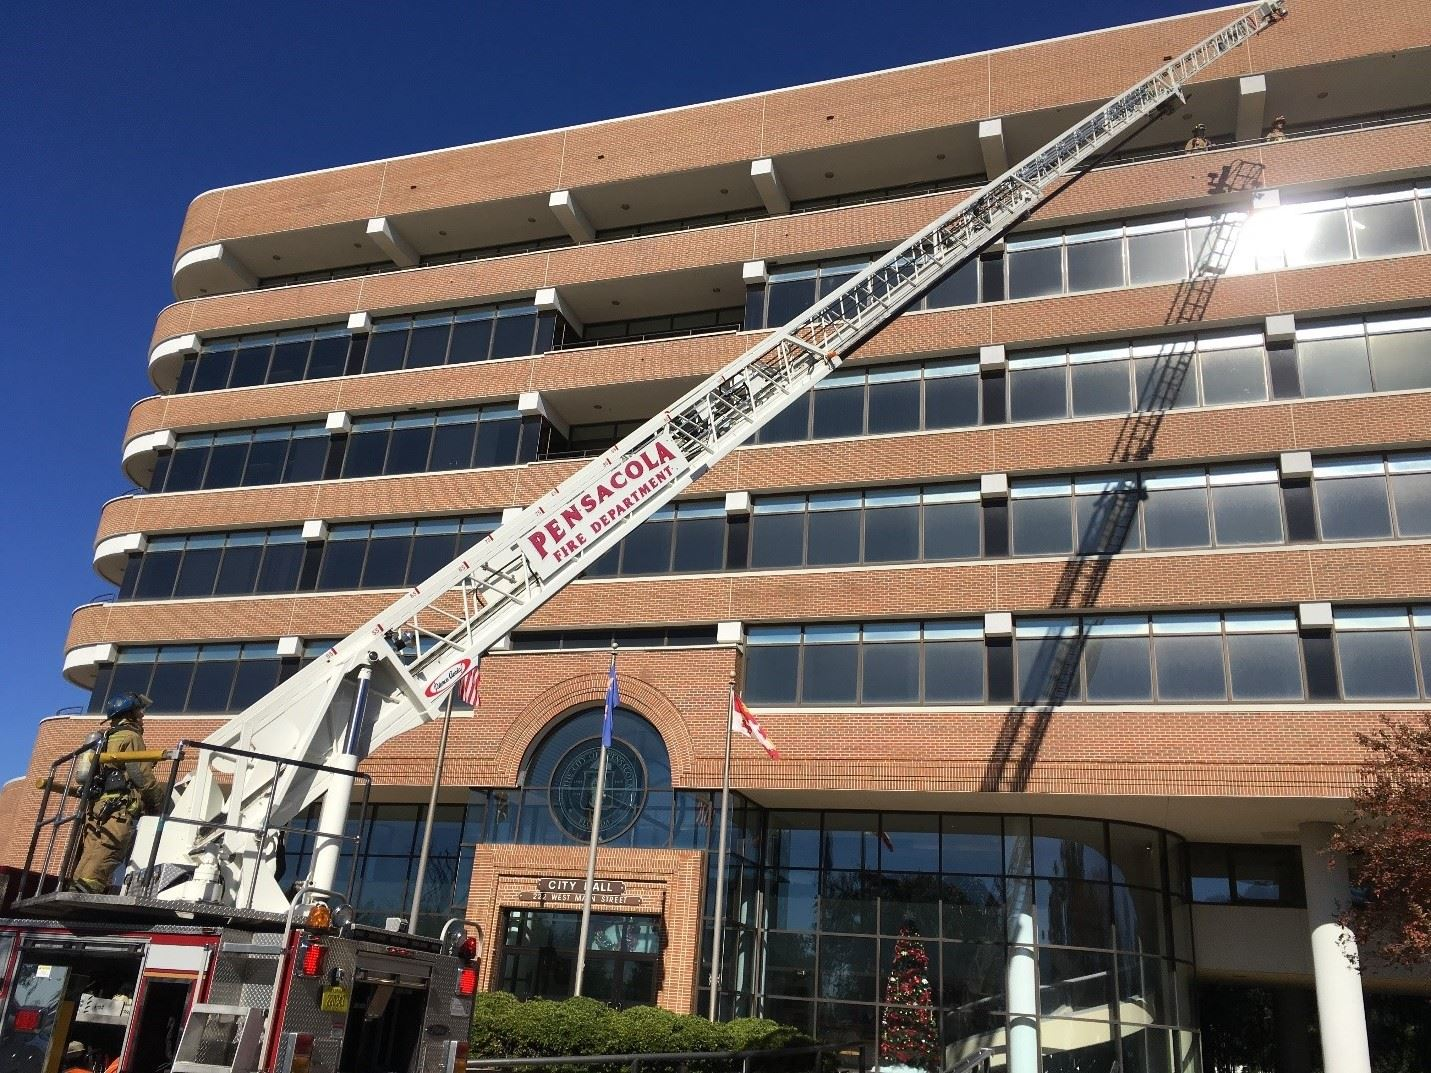 Ladder truck and city hall (2)